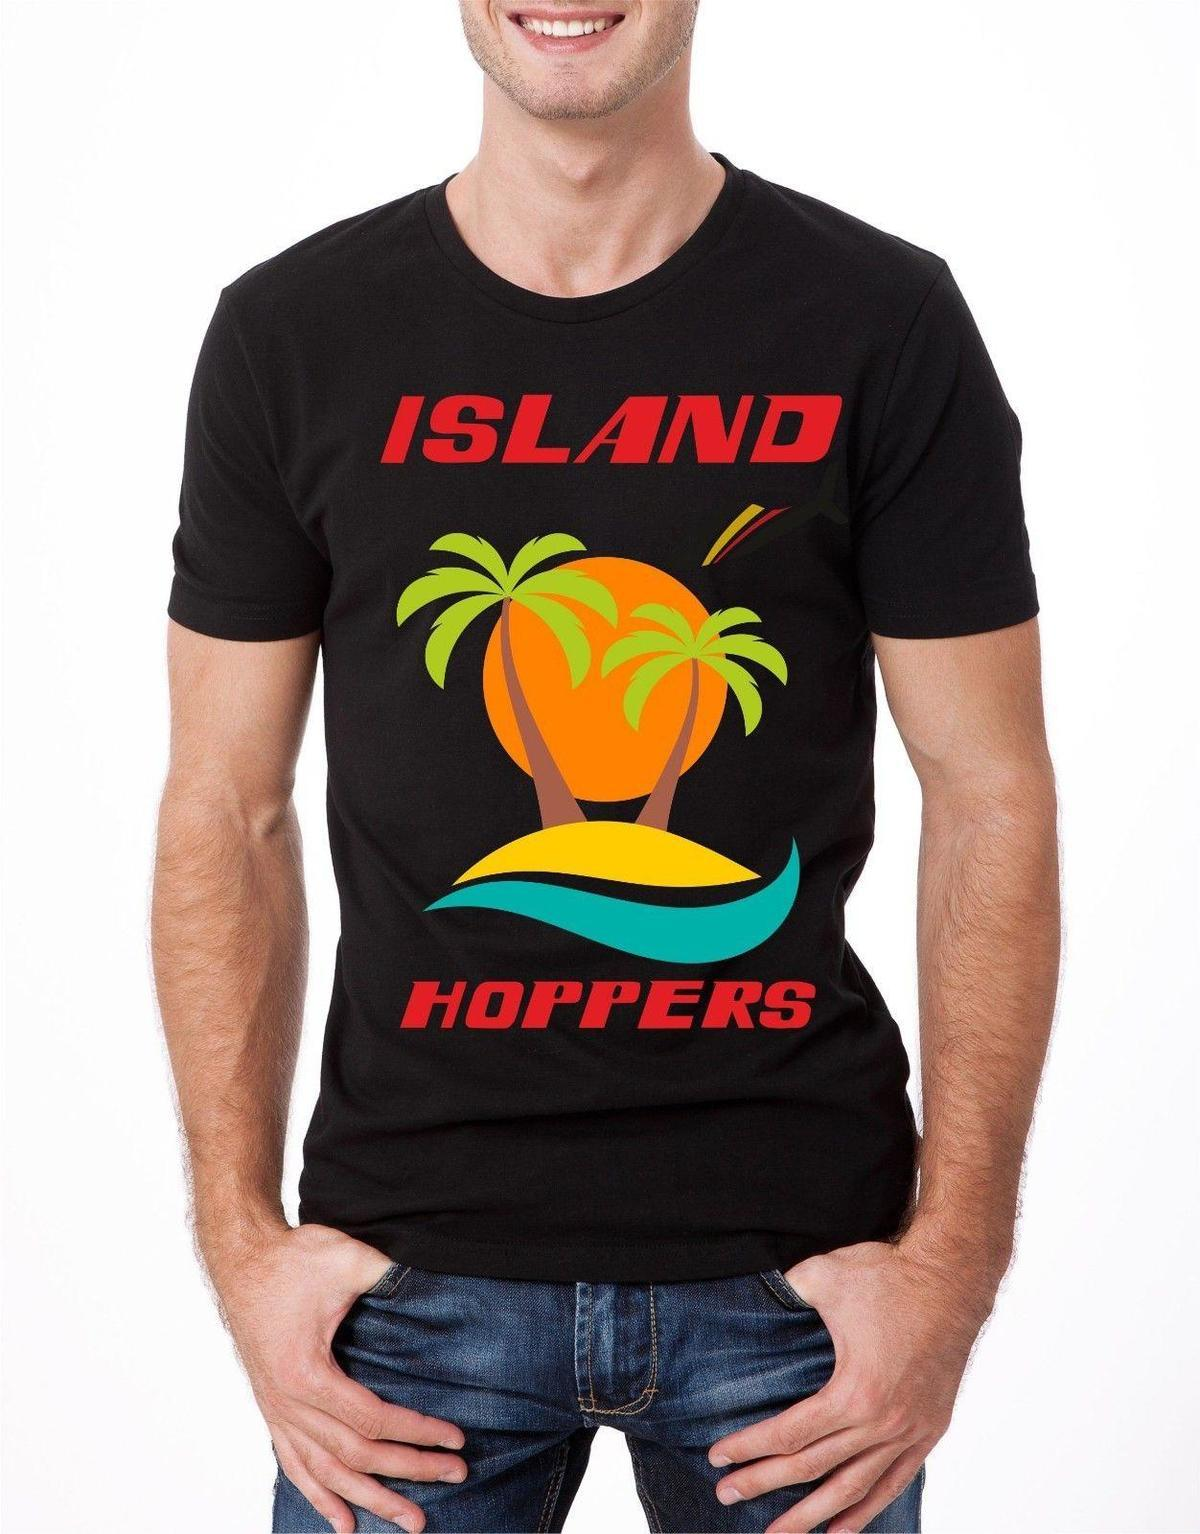 T-SHIRT Island Hoppers Magnum PI TV Tema Retro TEE Classic TC Hawaii Cool B